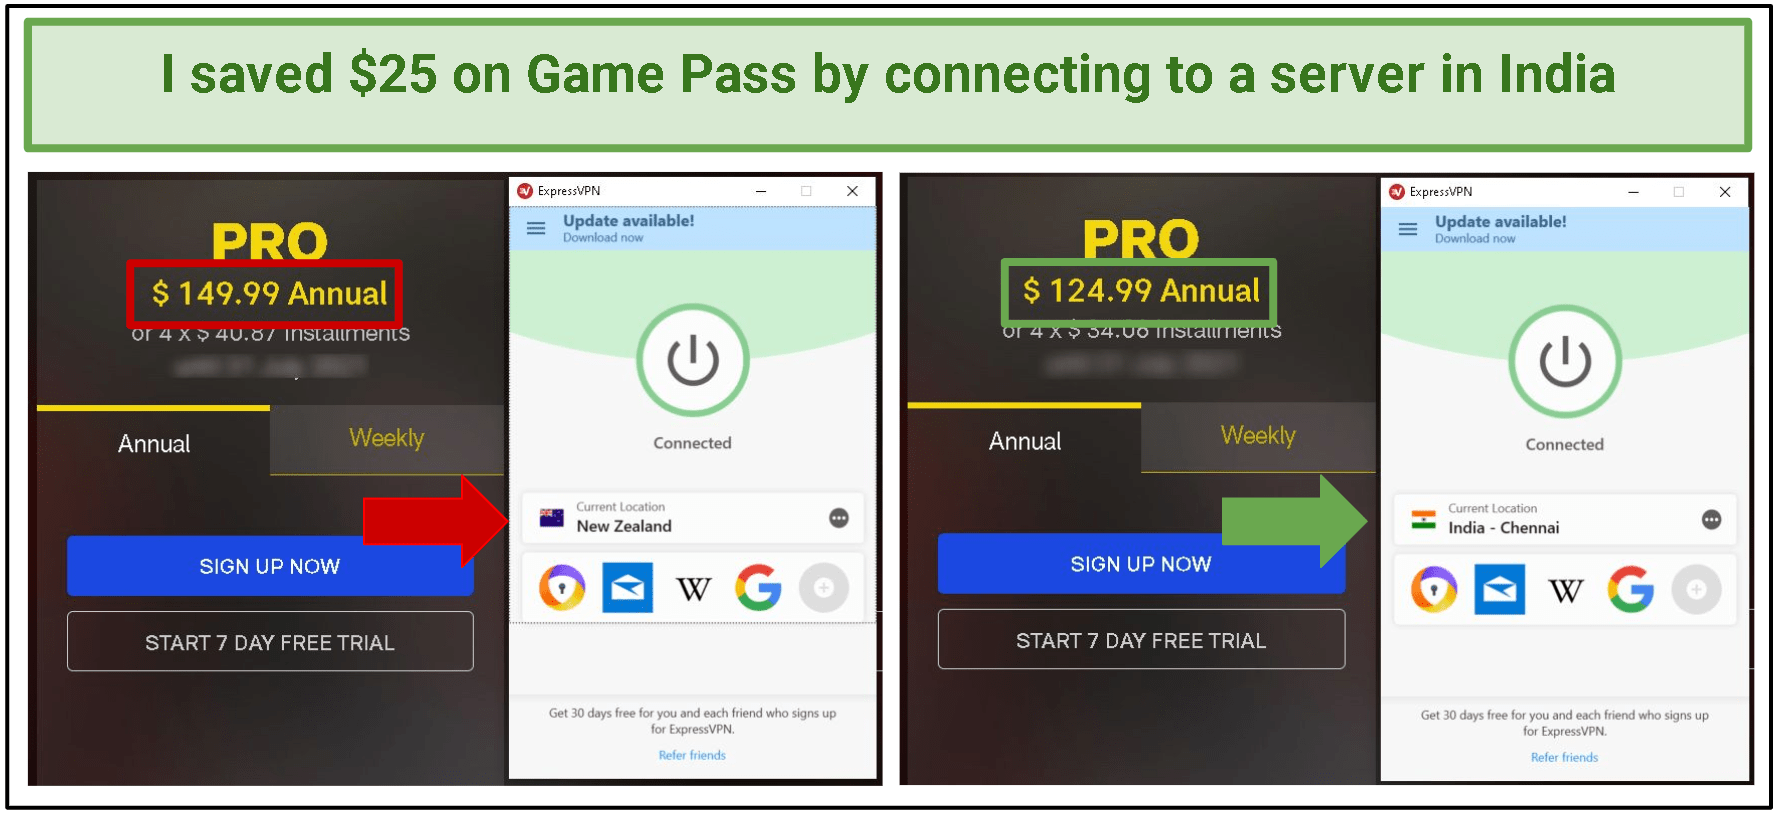 A screenshot of the price difference between the Indian Game Pass plan and the New Zealand Game Pass plan.